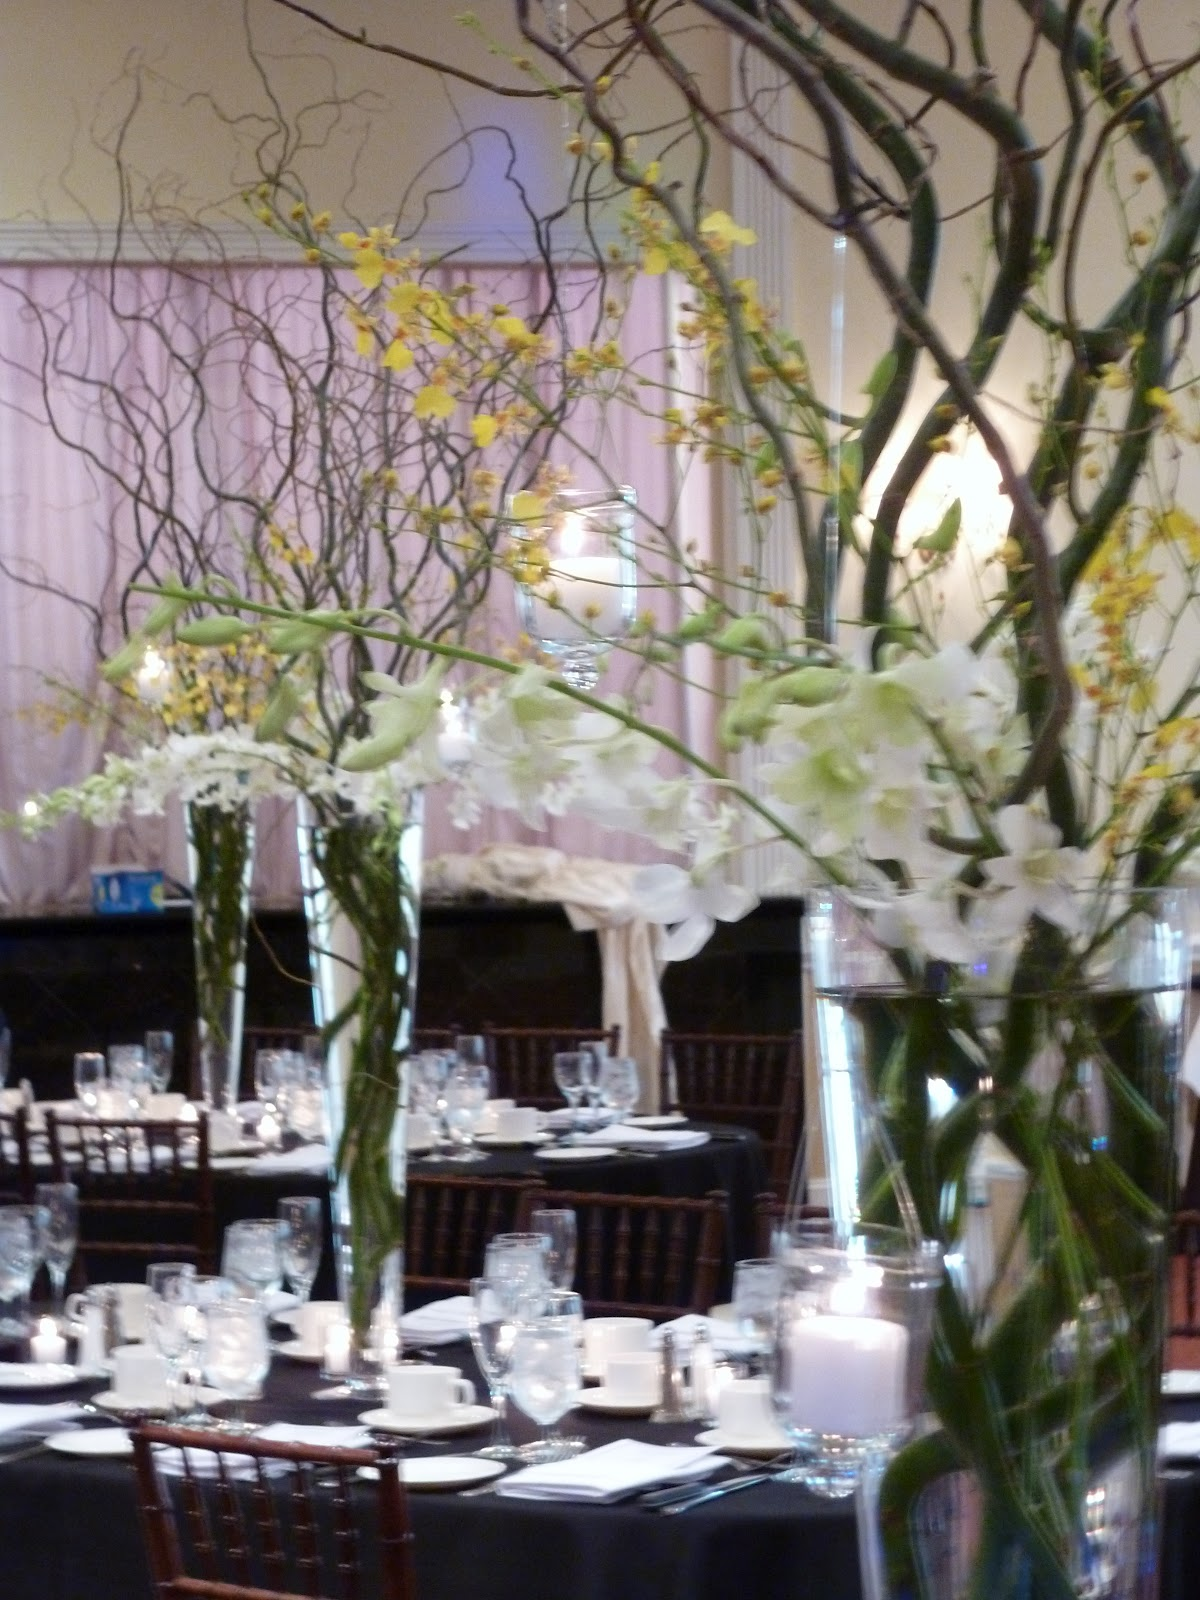 Ny engagements llc planning bridal blog orchids and curly look for those that are not big flower fans but want to still have pieces that make a statement in a room with very high ceilings trumpet vases with reviewsmspy